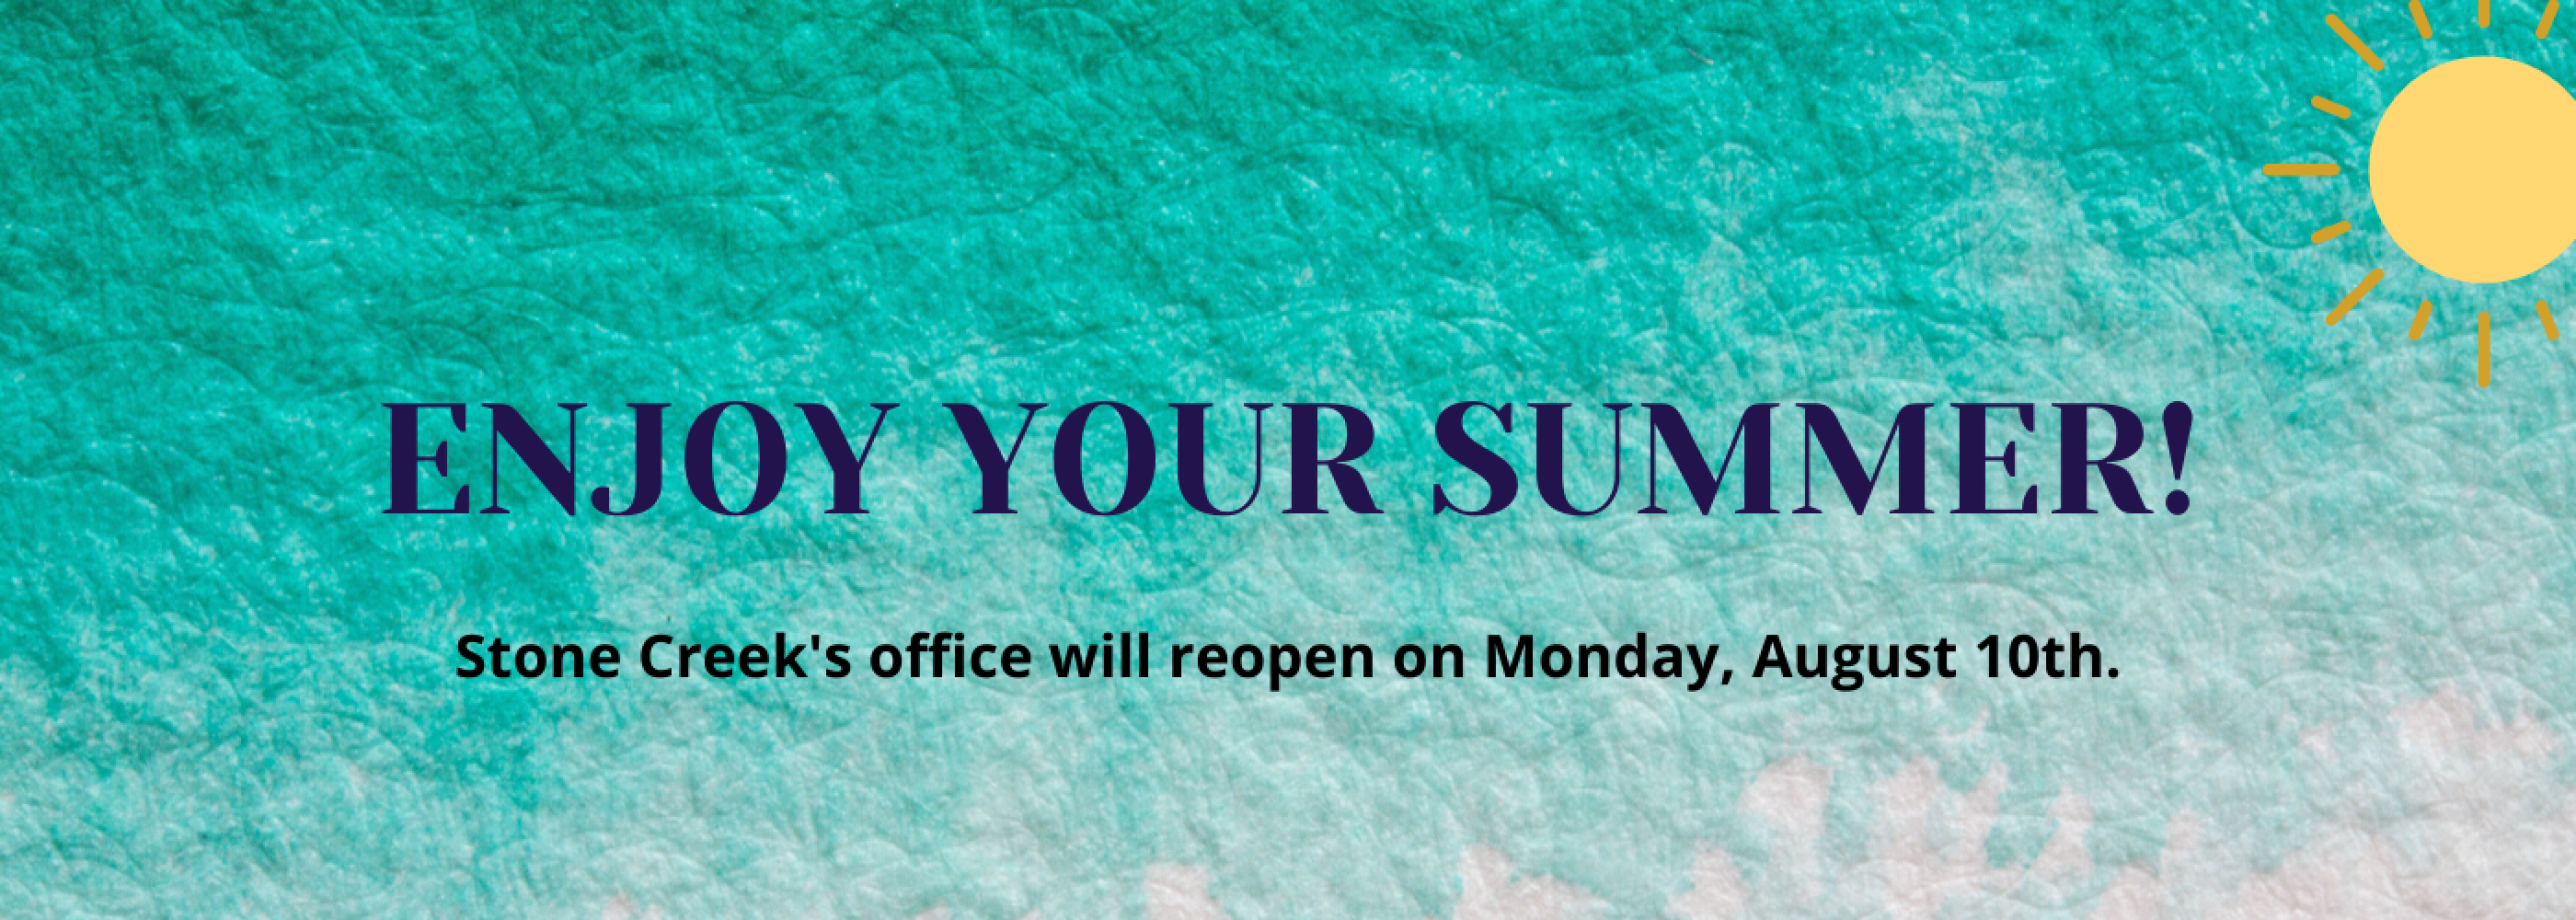 Summer Office Reopening